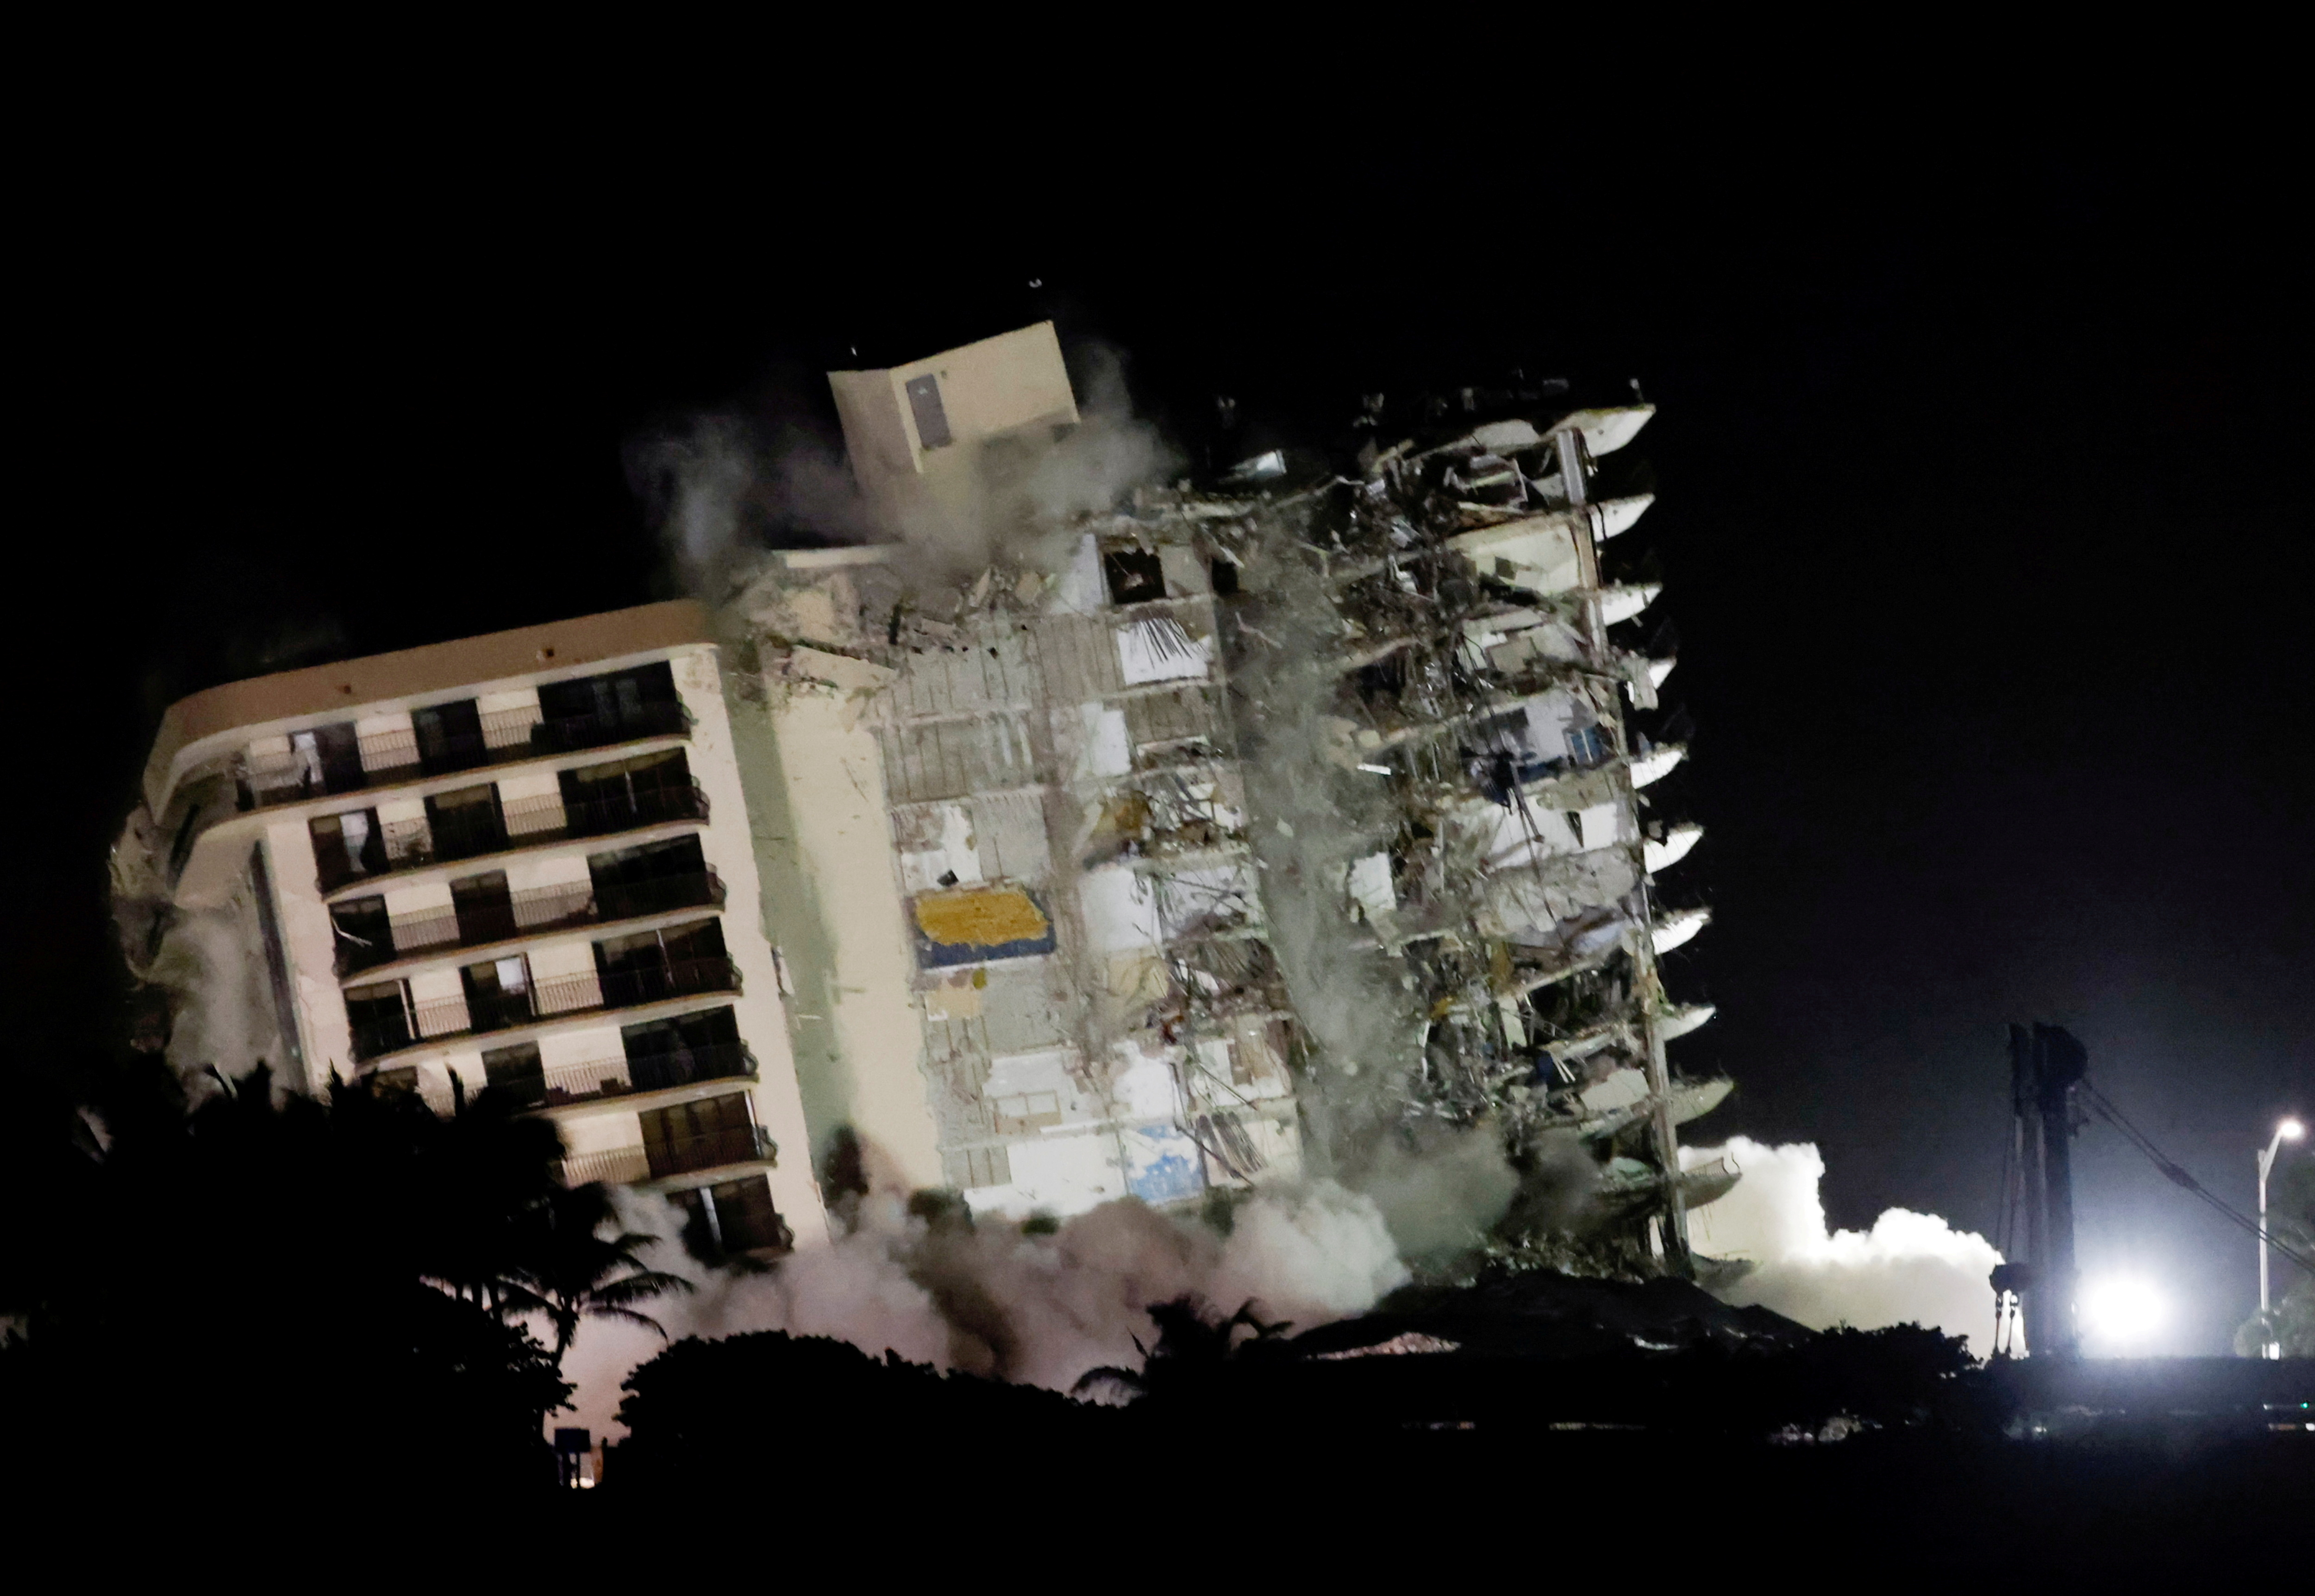 The partially collapsed Champlain Towers South residential building is demolished, in Surfside, Florida, July 4, 2021. REUTERS/Marco Bello/File Photo